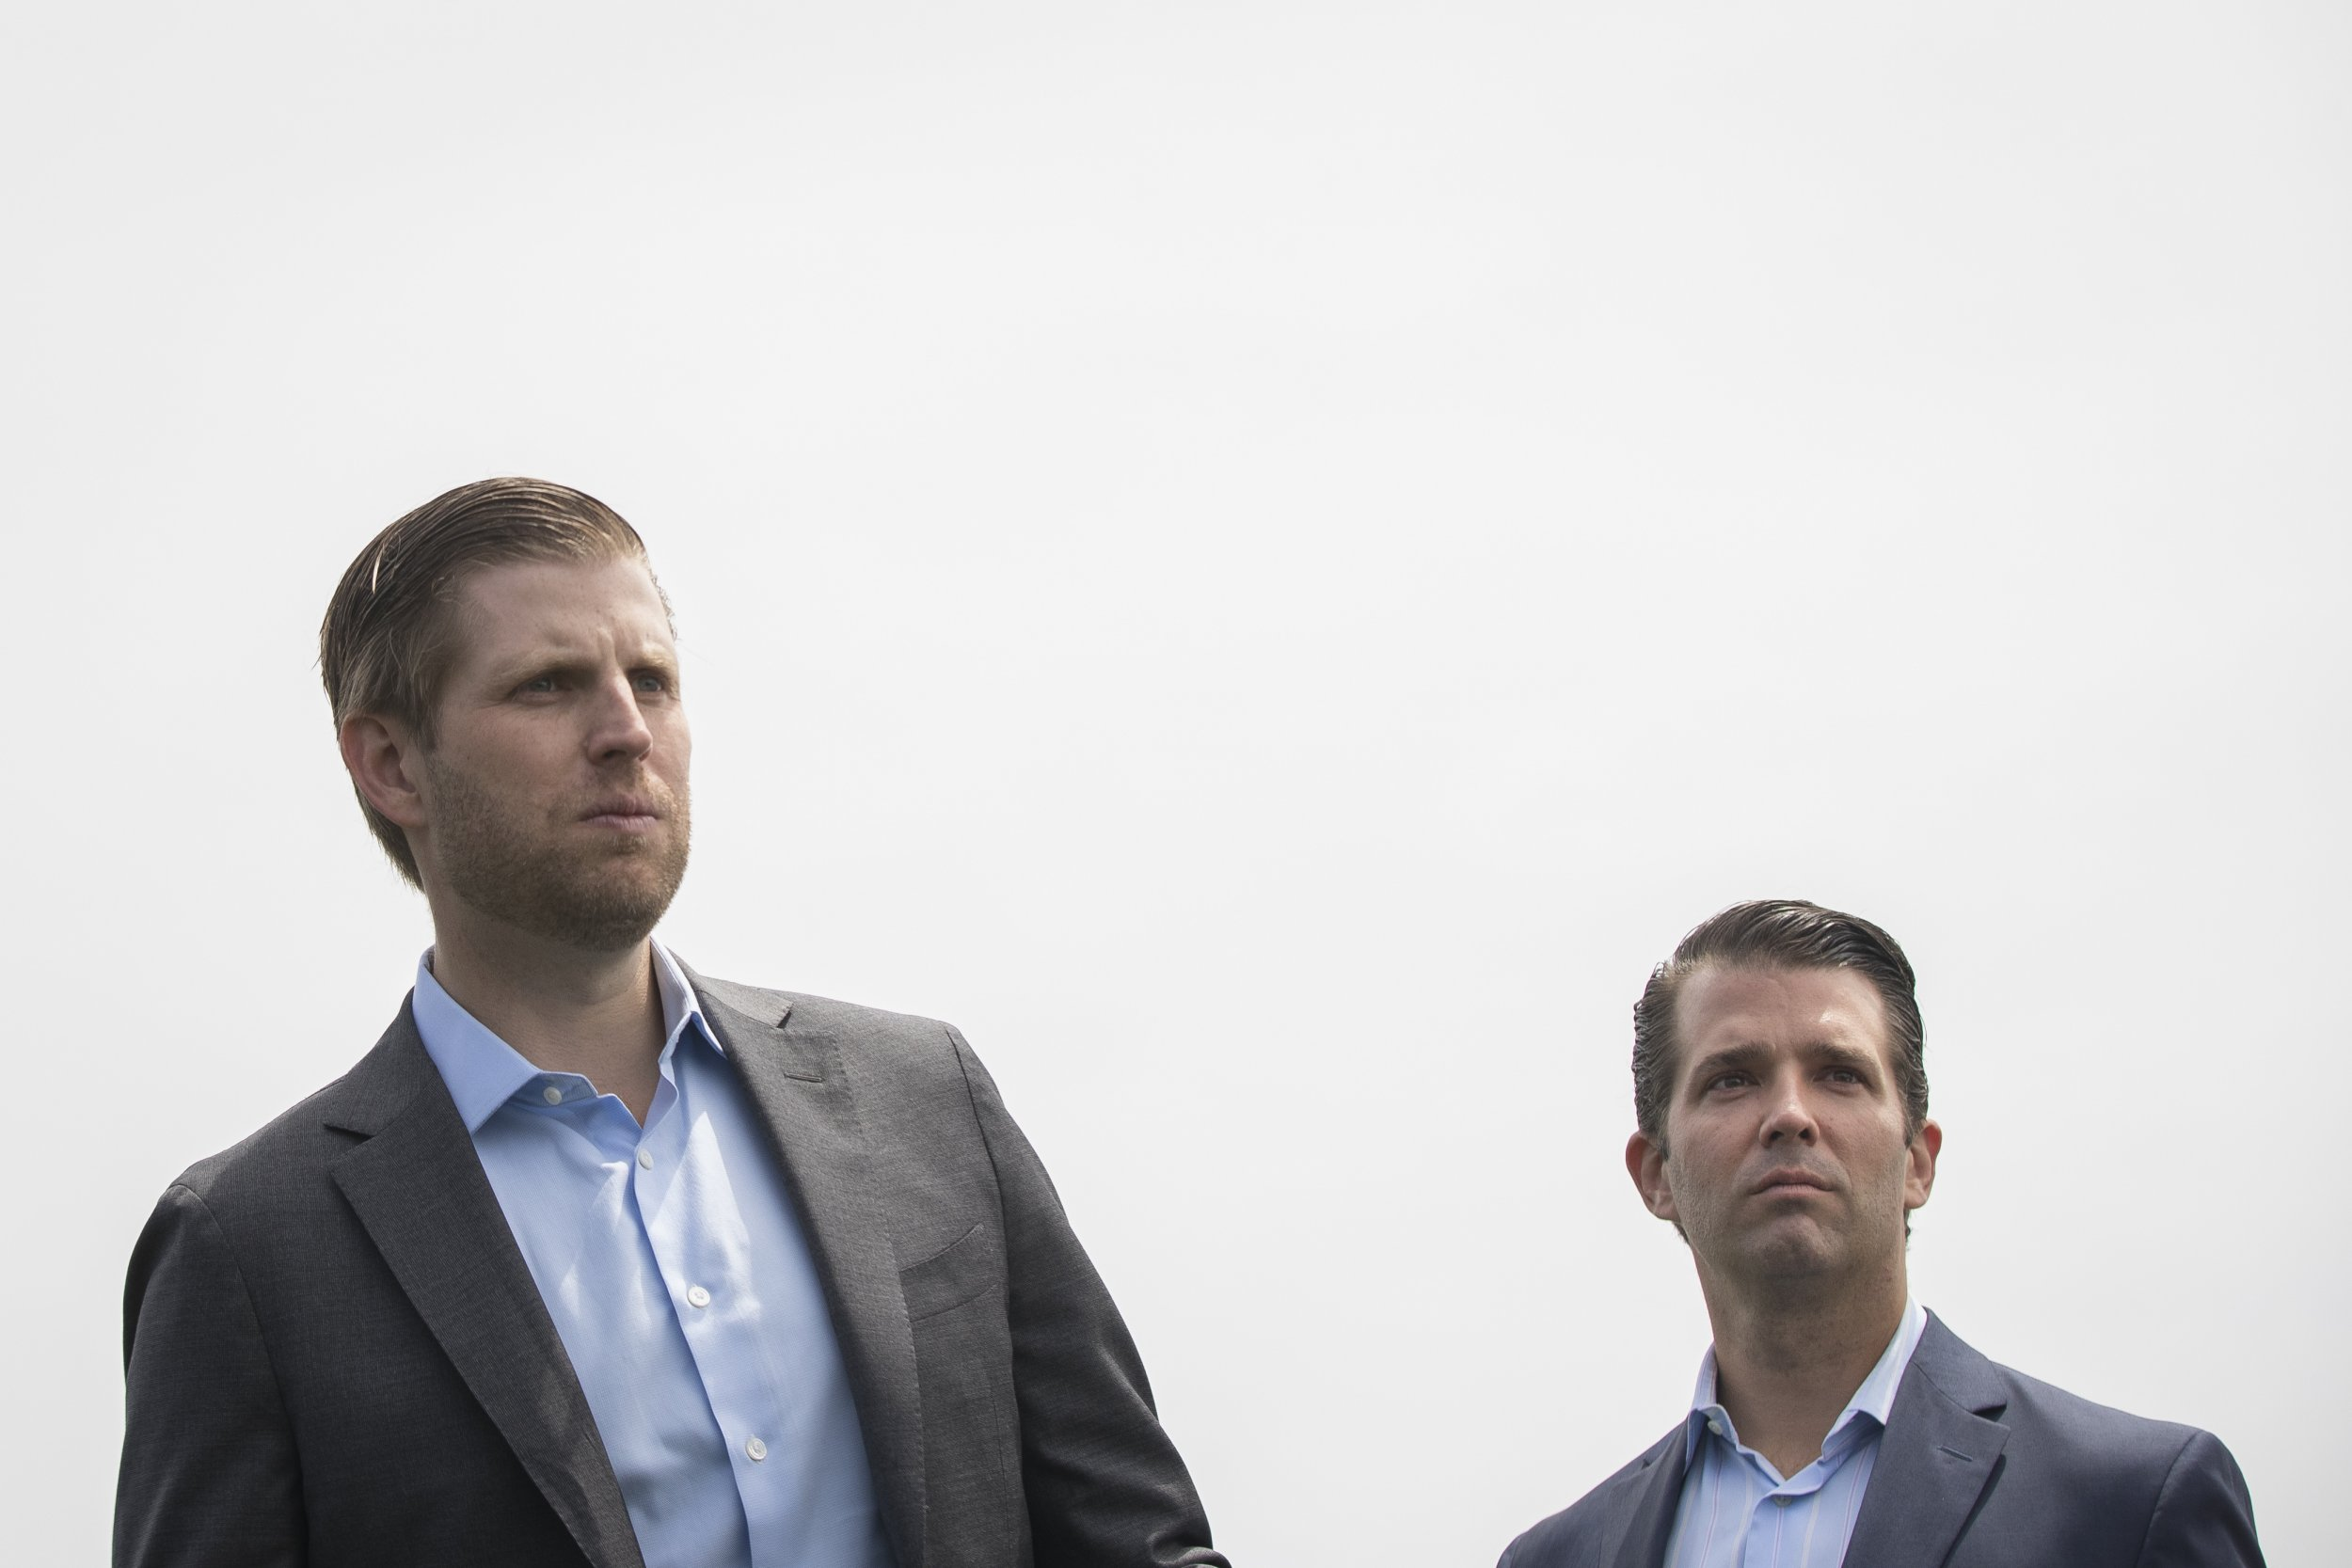 eric trump donald trump presidency company sacrifices trump organization